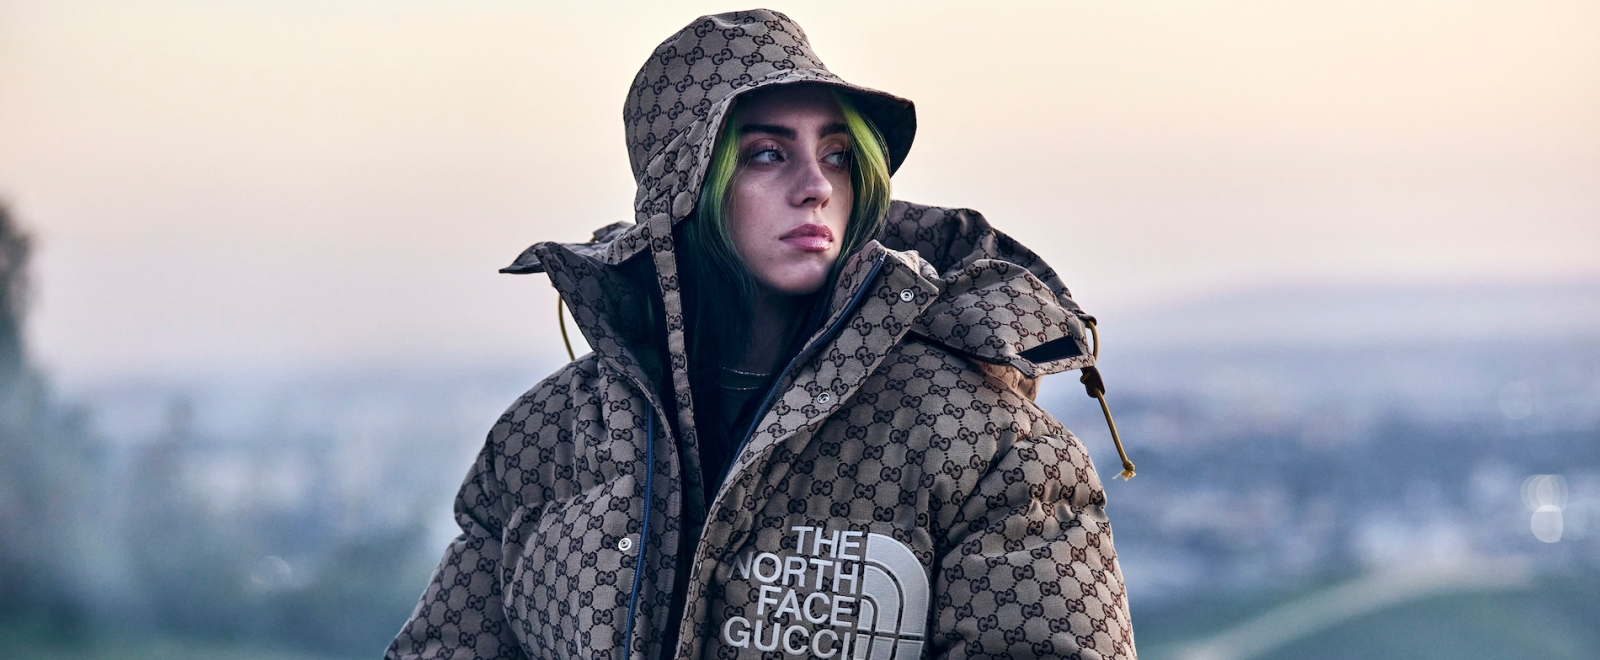 Billie Eilish Is Reportedly Collaborating With Air Jordan On Her Own Sneaker